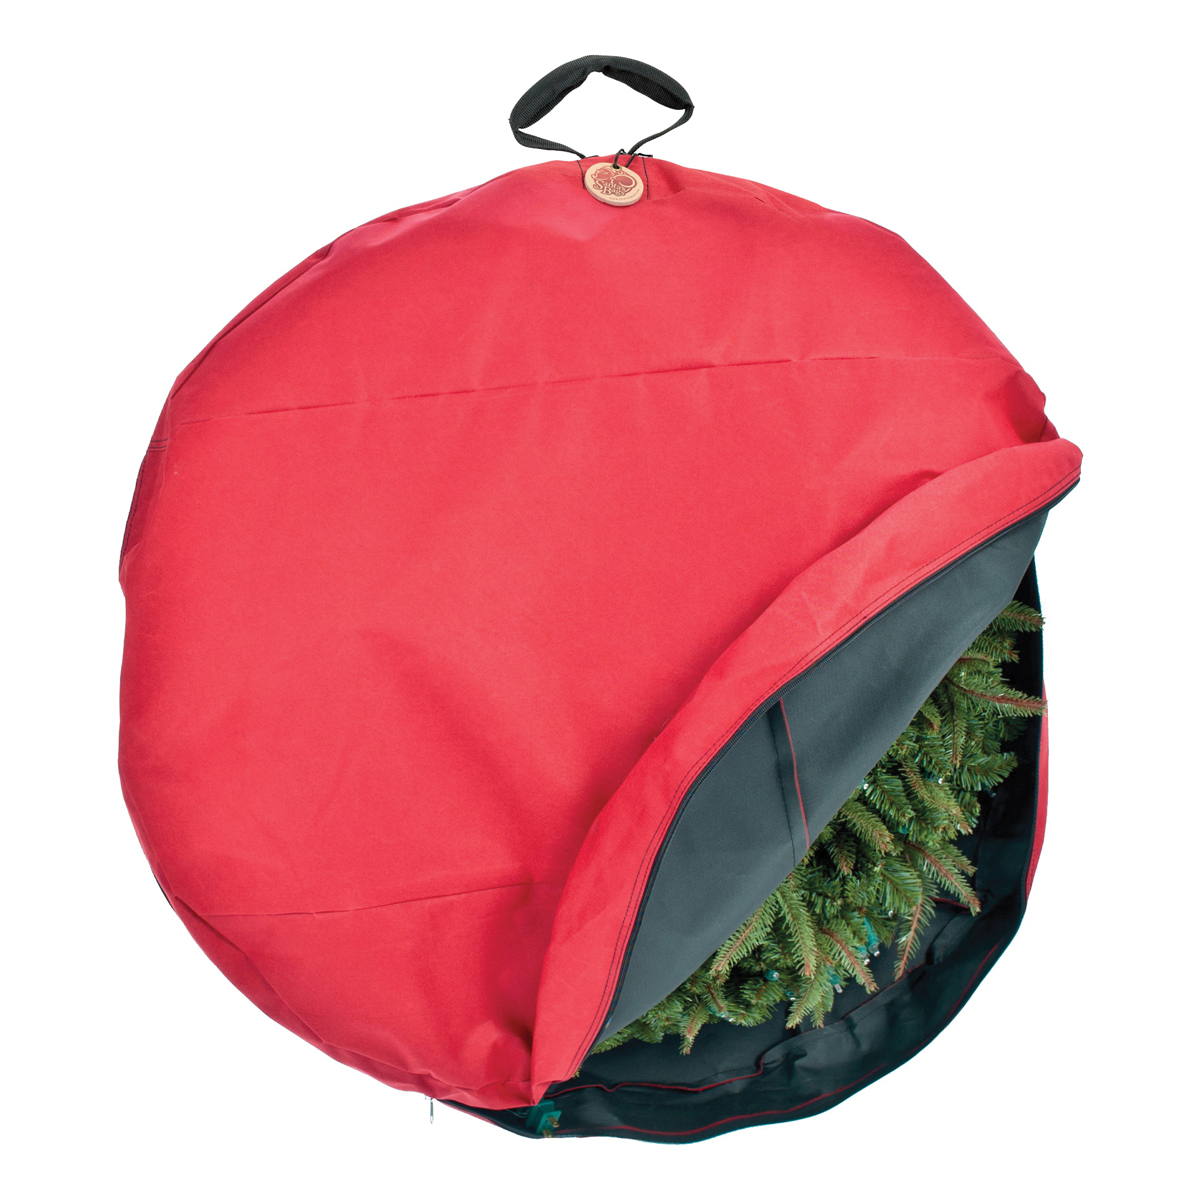 Picture of Treekeeper SB-10154 Wreath Storage Cover, 30 in, 30 in Capacity, Polyester, Red